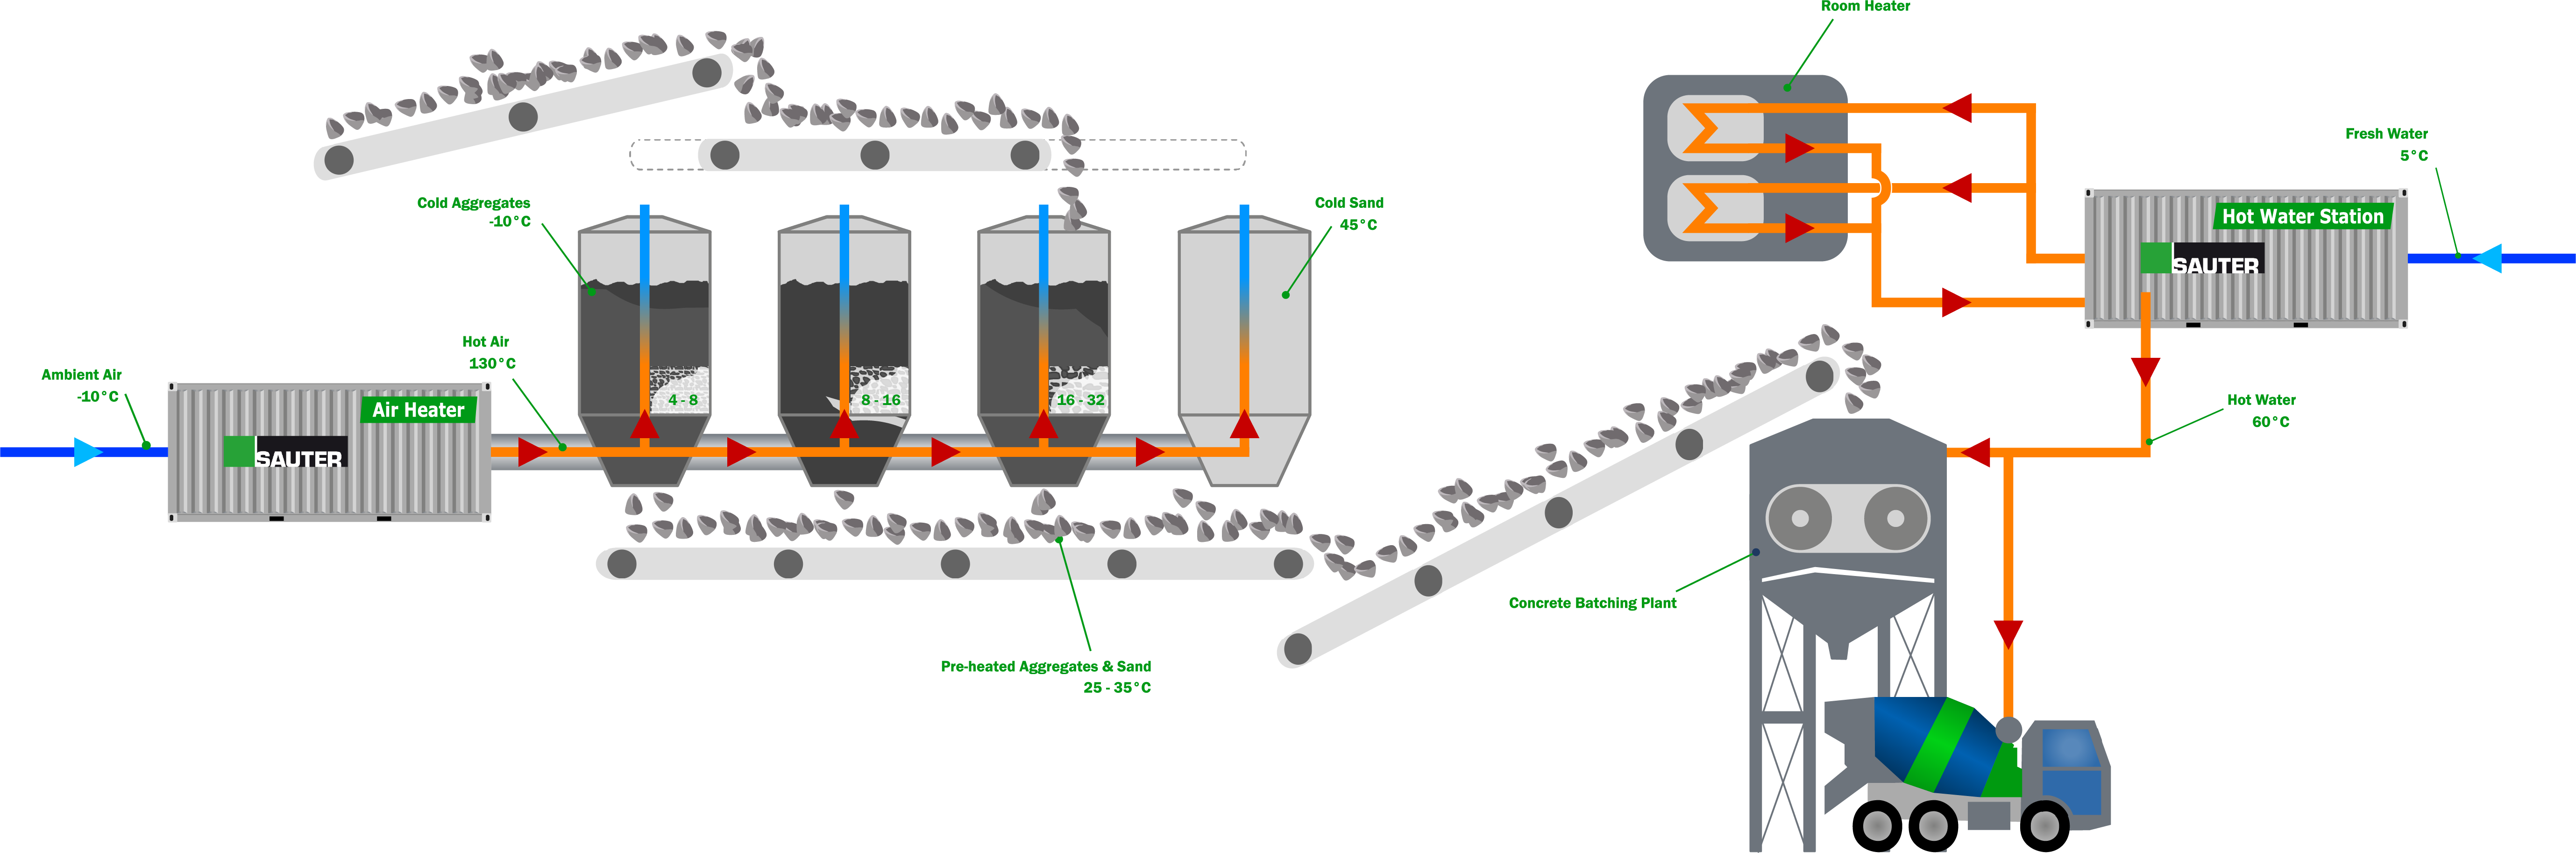 Concrete-Heating-System